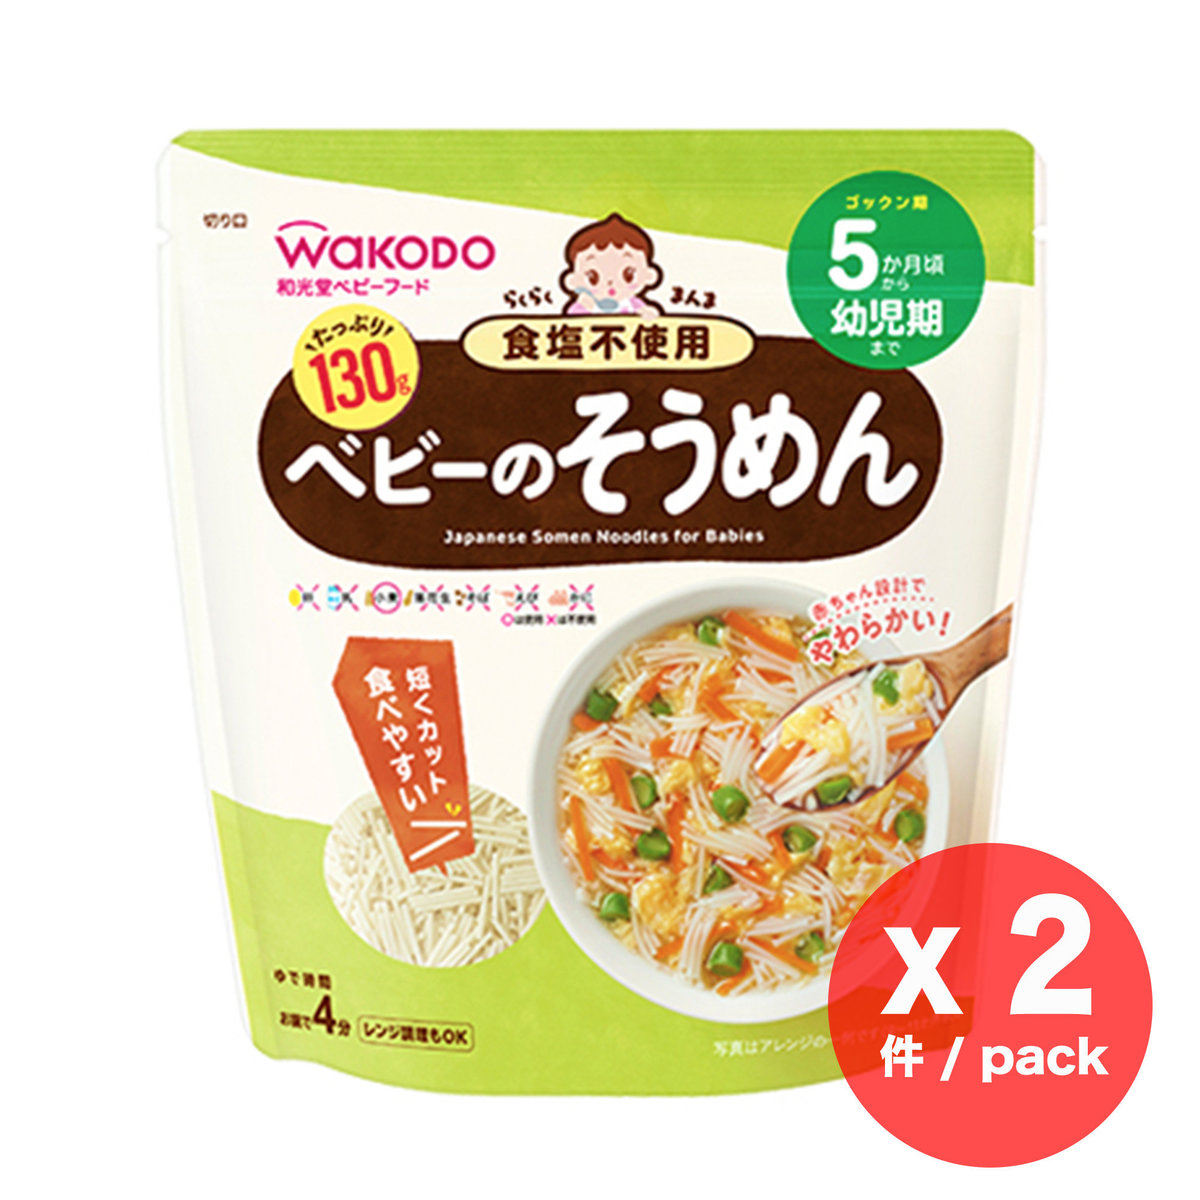 Wakodo Japanese Somen Noodles for Babies (New packing) 130g x 2 pack